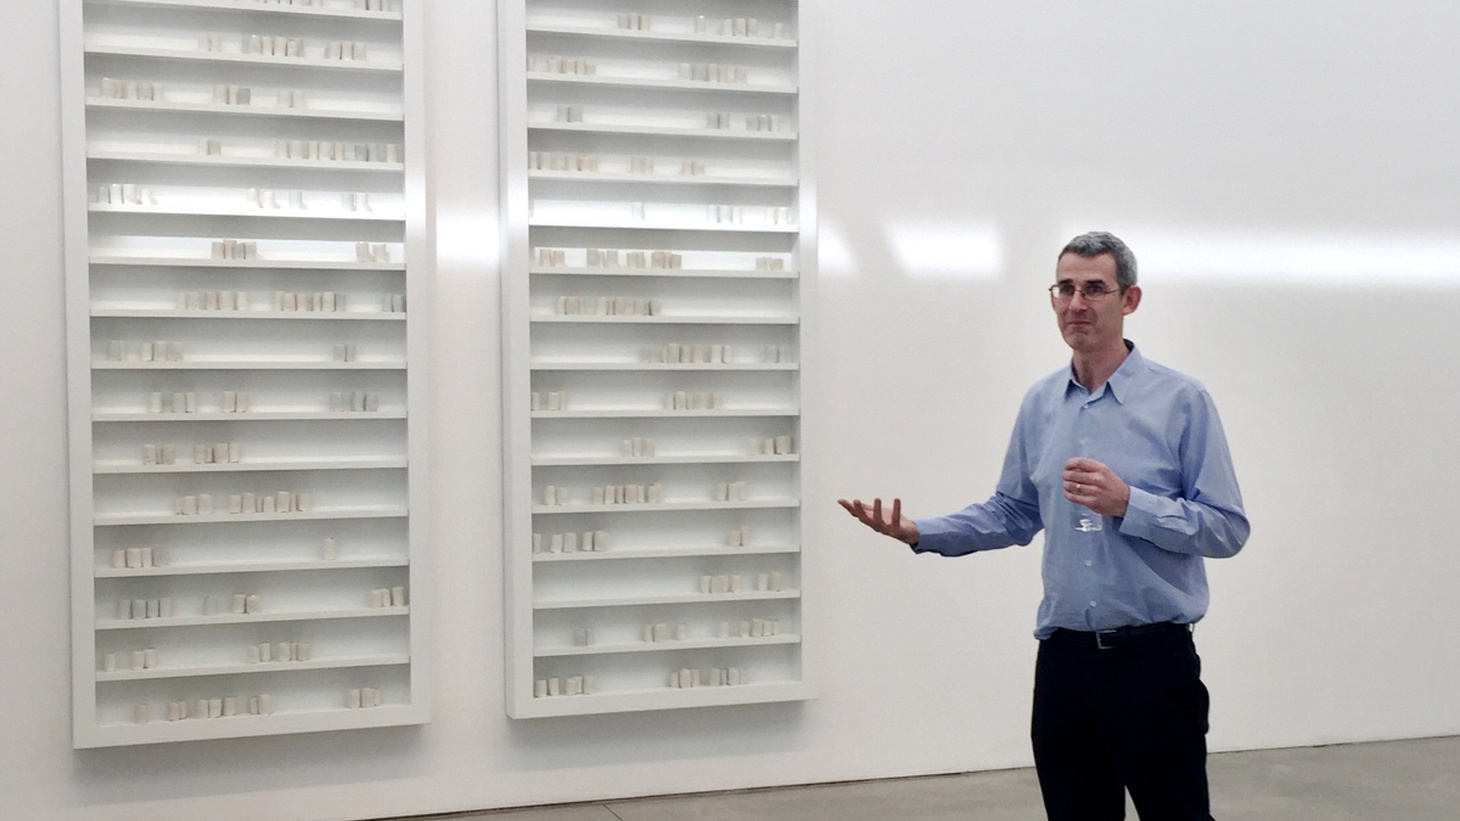 Edward Goldman lauds artist Edmund de Waal's multifaceted talents and charmingly humble eloquence.